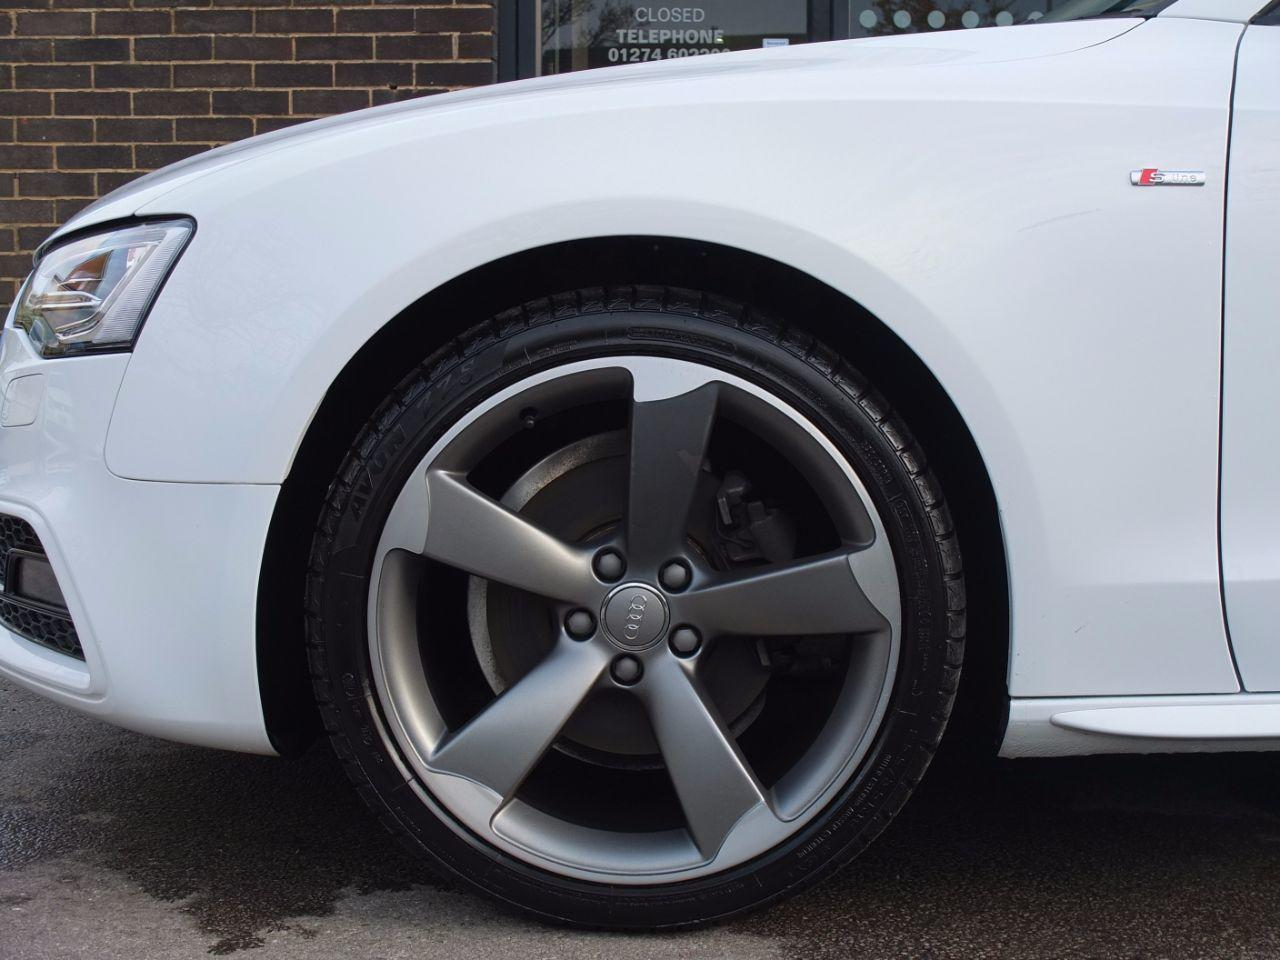 Audi A5 Coupe 2.0 TDI 177 Black Edition Multitronic Coupe Diesel Ibis White